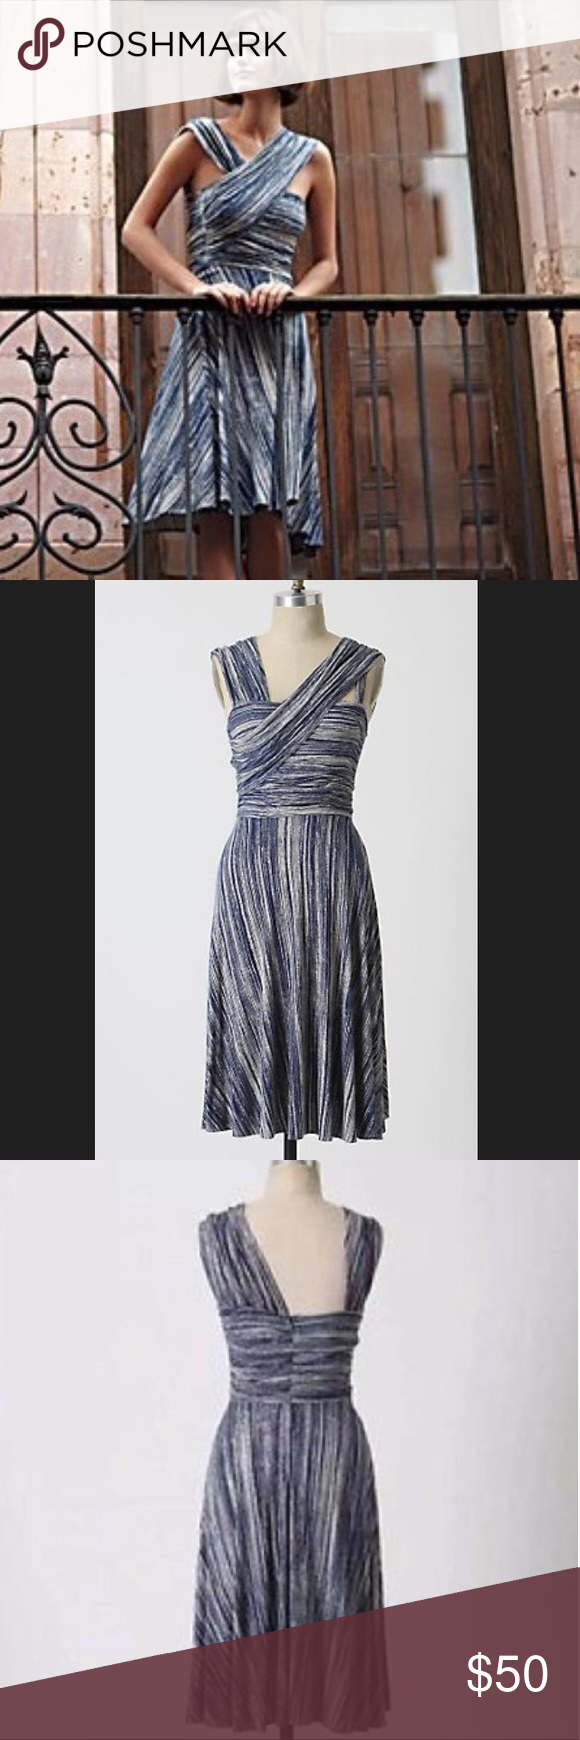 627b37f8ce92 Anthropologie Dreamy Drape Dress by Tracy Reese A gathered jersey frock  from Plenty by Tracy Reese for Anthropologie, in the speckled ink pattern,  ...